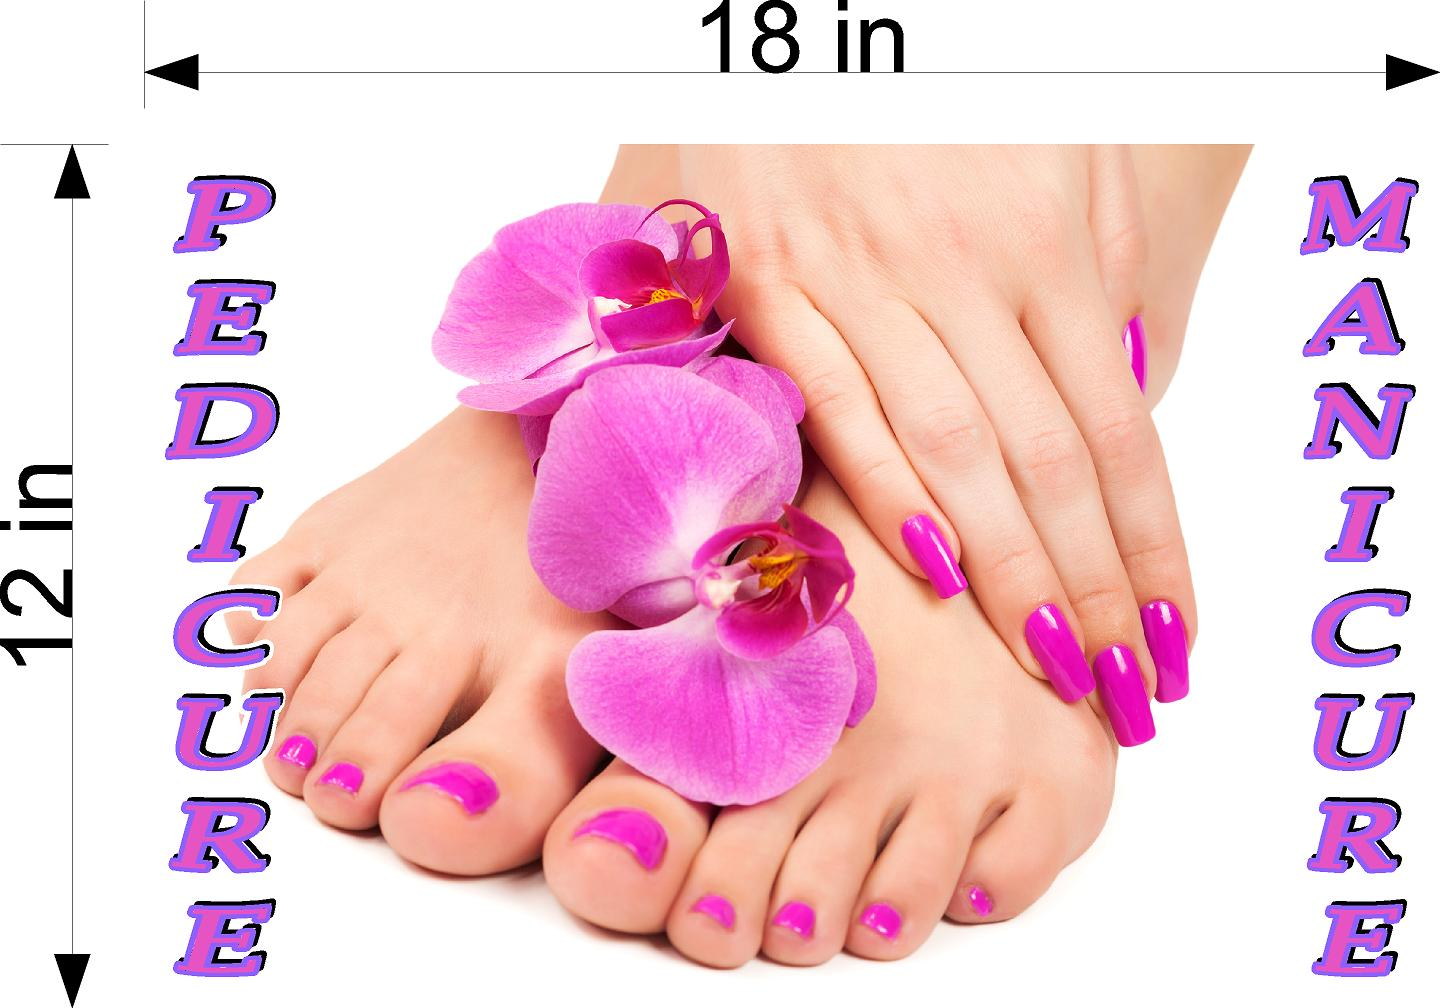 Pedicure & Manicure 19 Wallpaper Fabric Poster Decal with Adhesive Backing Wall Sticker Decor Indoors Interior Sign Horizontal